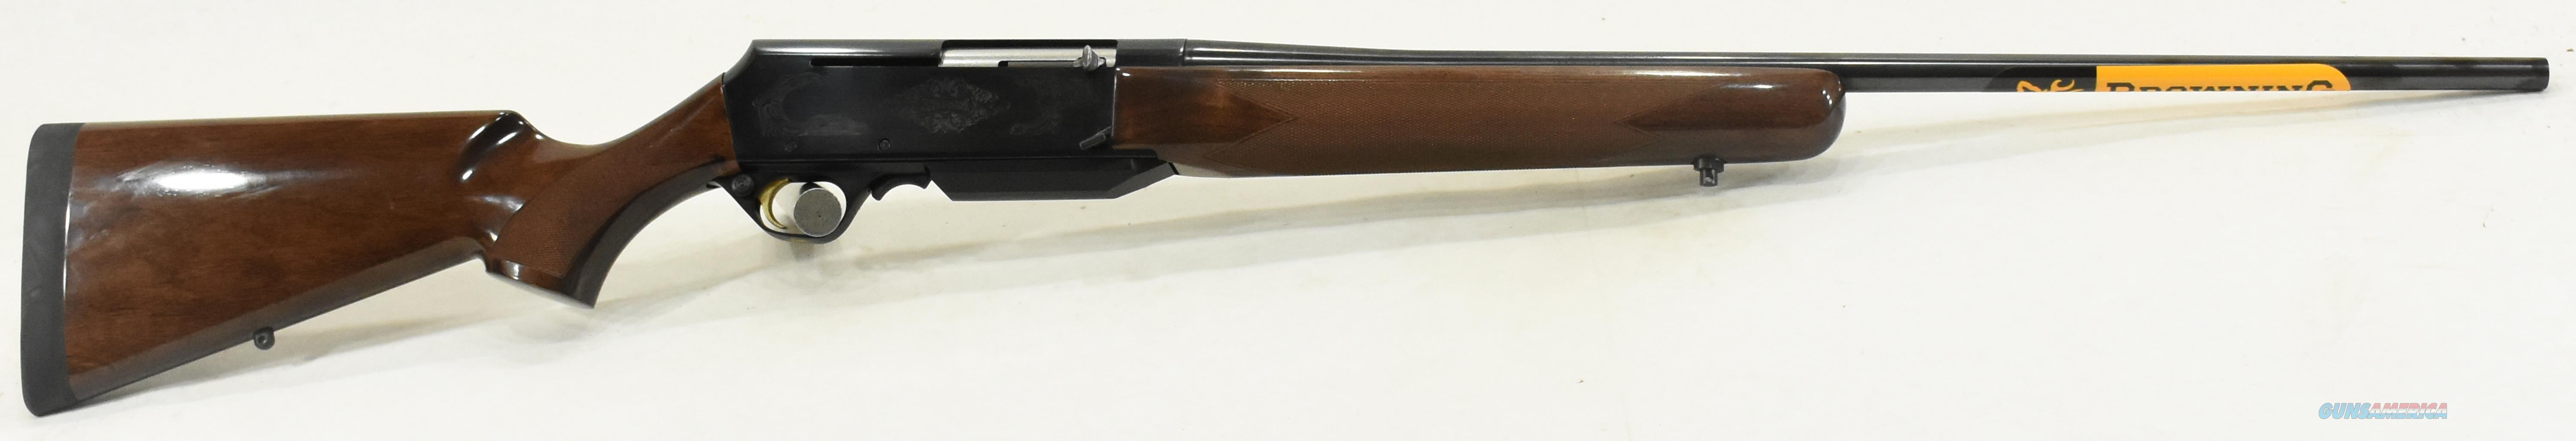 BAR Mark II Safari Walnut 300Win 24In  031001229  Guns > Rifles > Browning Rifles > Semi Auto > Hunting